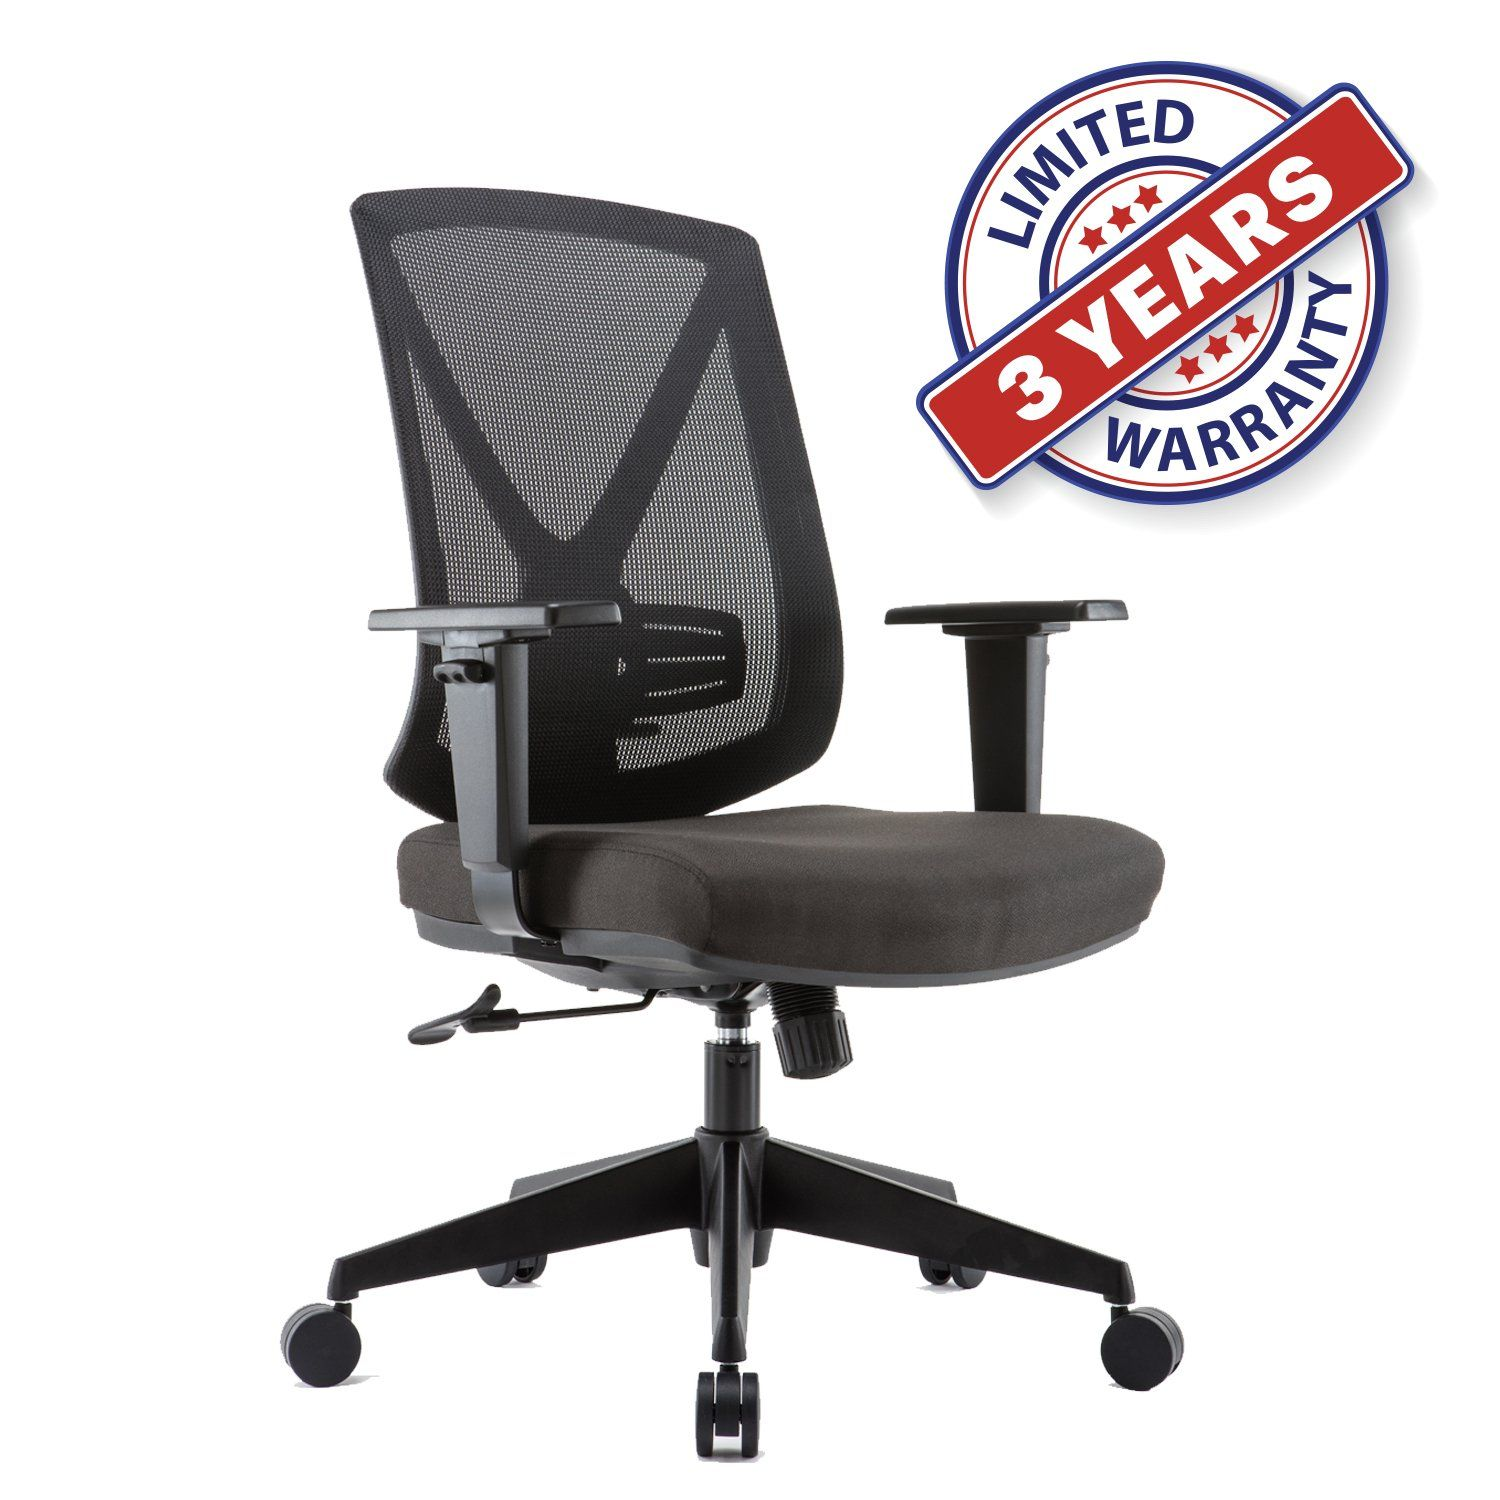 Ergonomic High Mesh Swivel Desk Chair with Adjustable